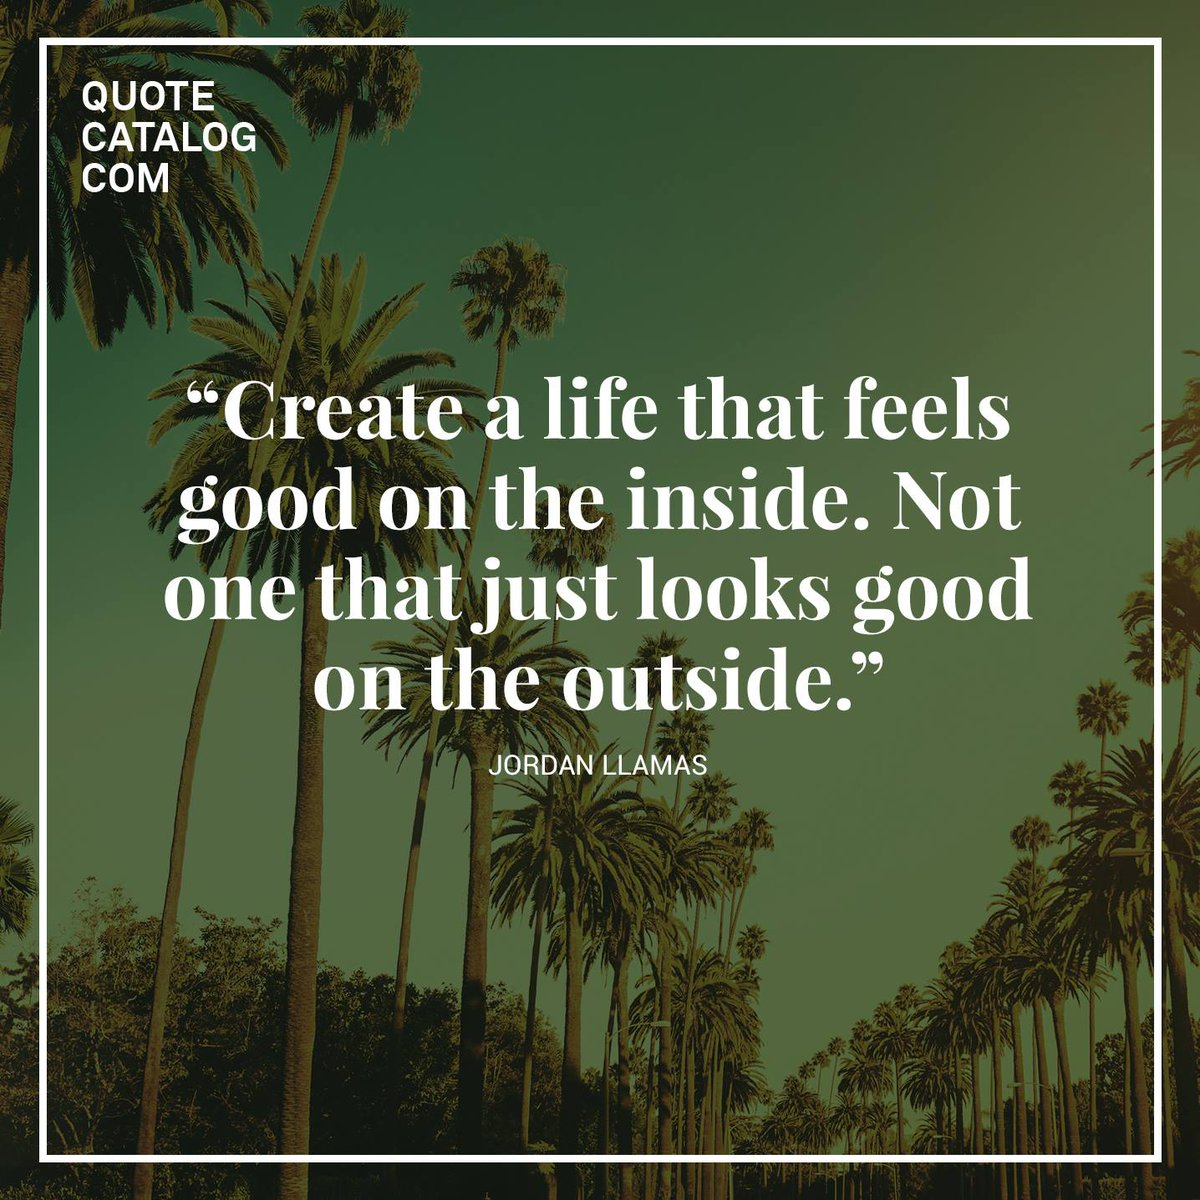 Quote Catalog On Twitter Create A Life That Feels Good On The